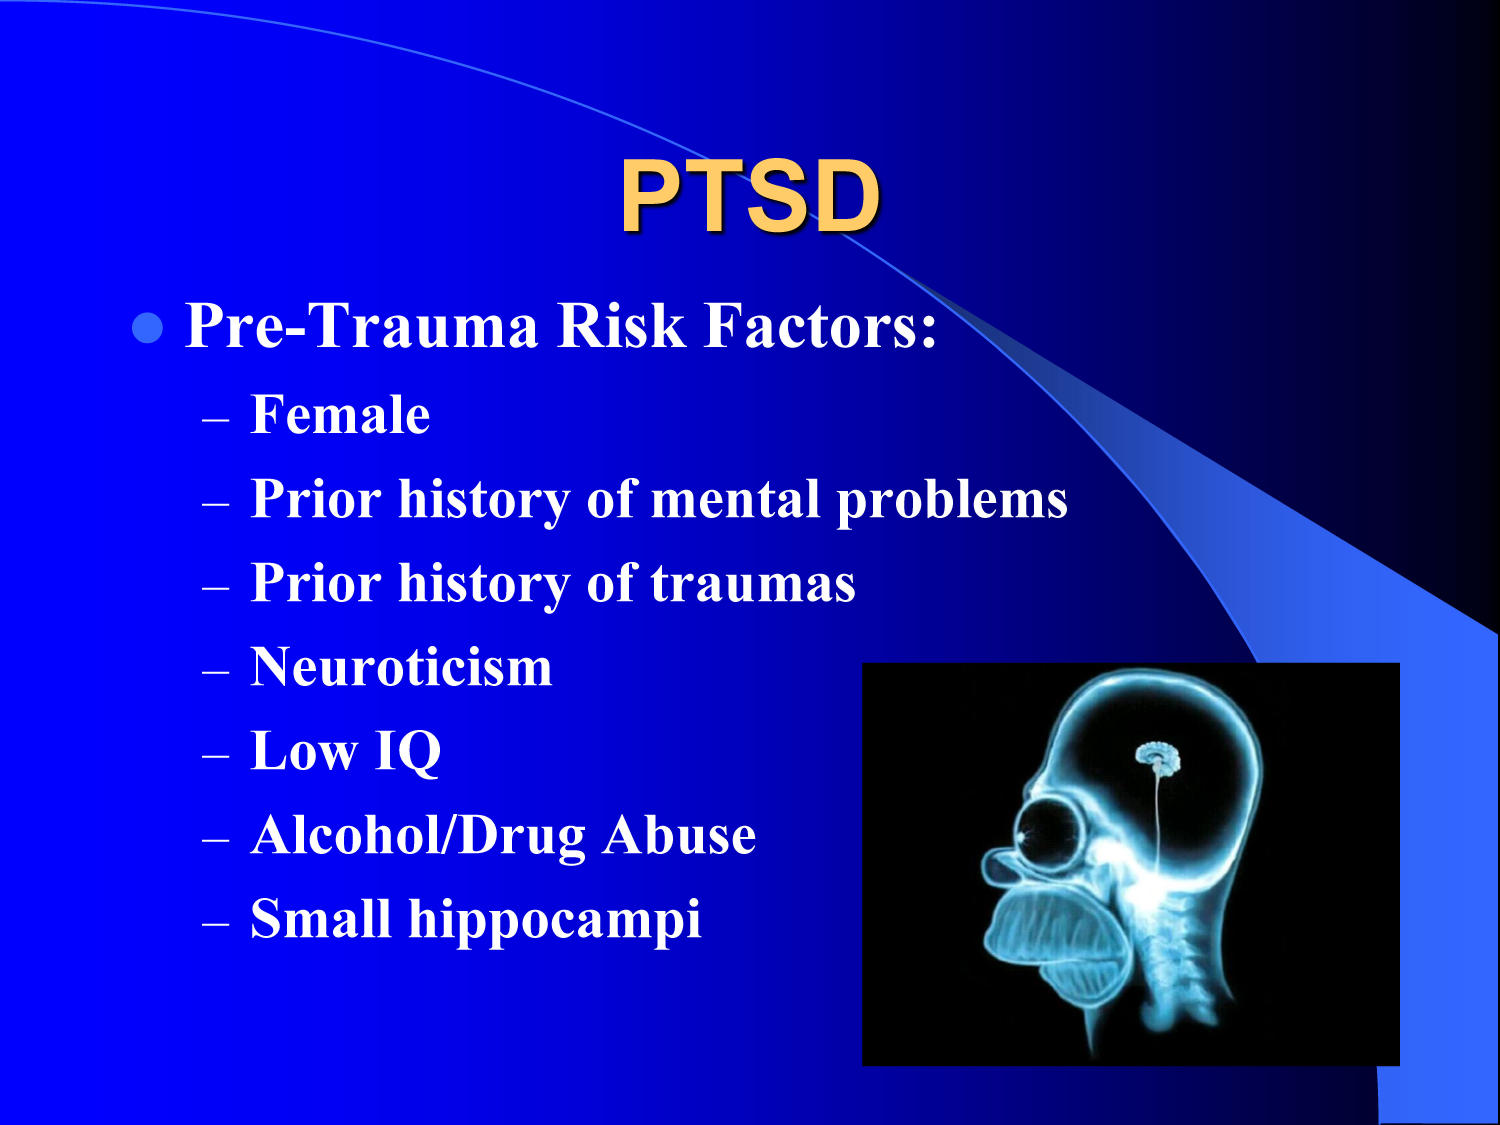 Posttraumatic Stress Disorder (PTSD): What is it and what causes it?                                                                                                      [Sequence #]: 11 of 17